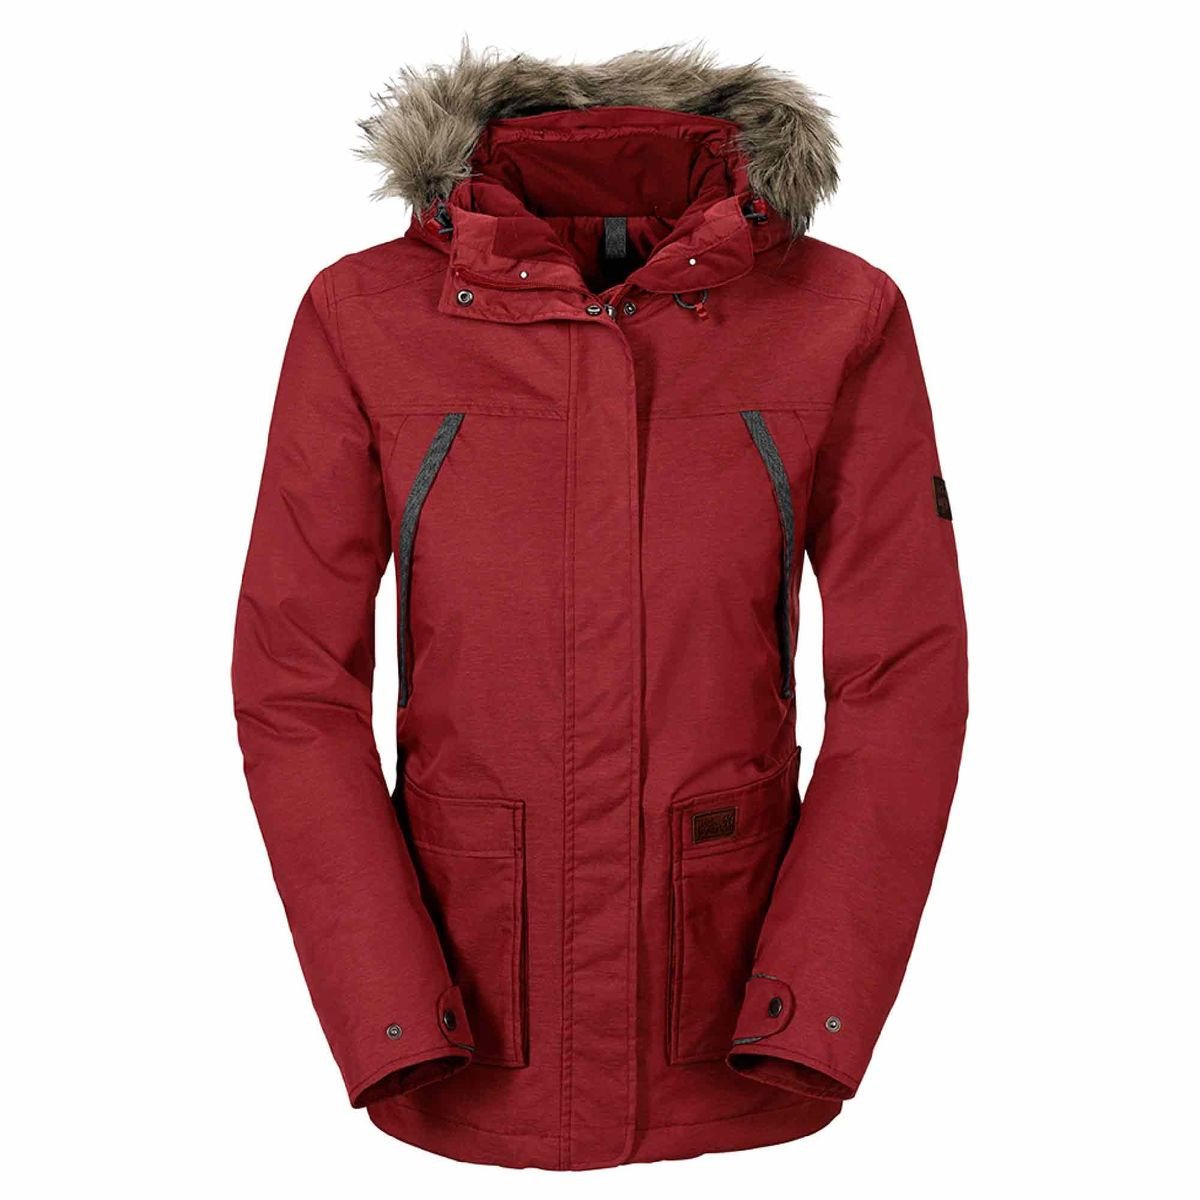 ELLISTON TEXAPORE women's jacket